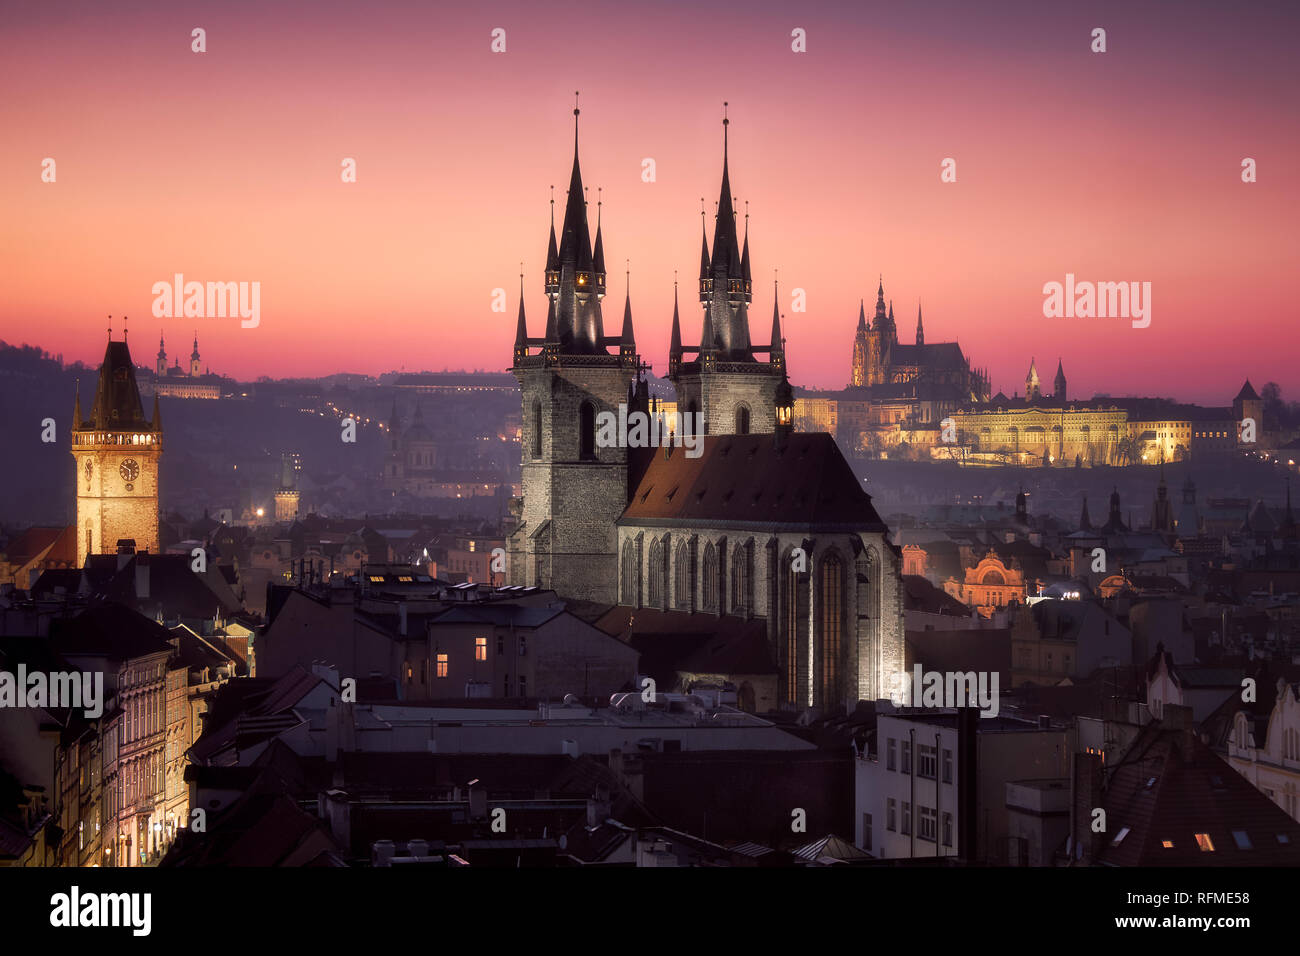 An amazing sunset in Prague - Stock Image